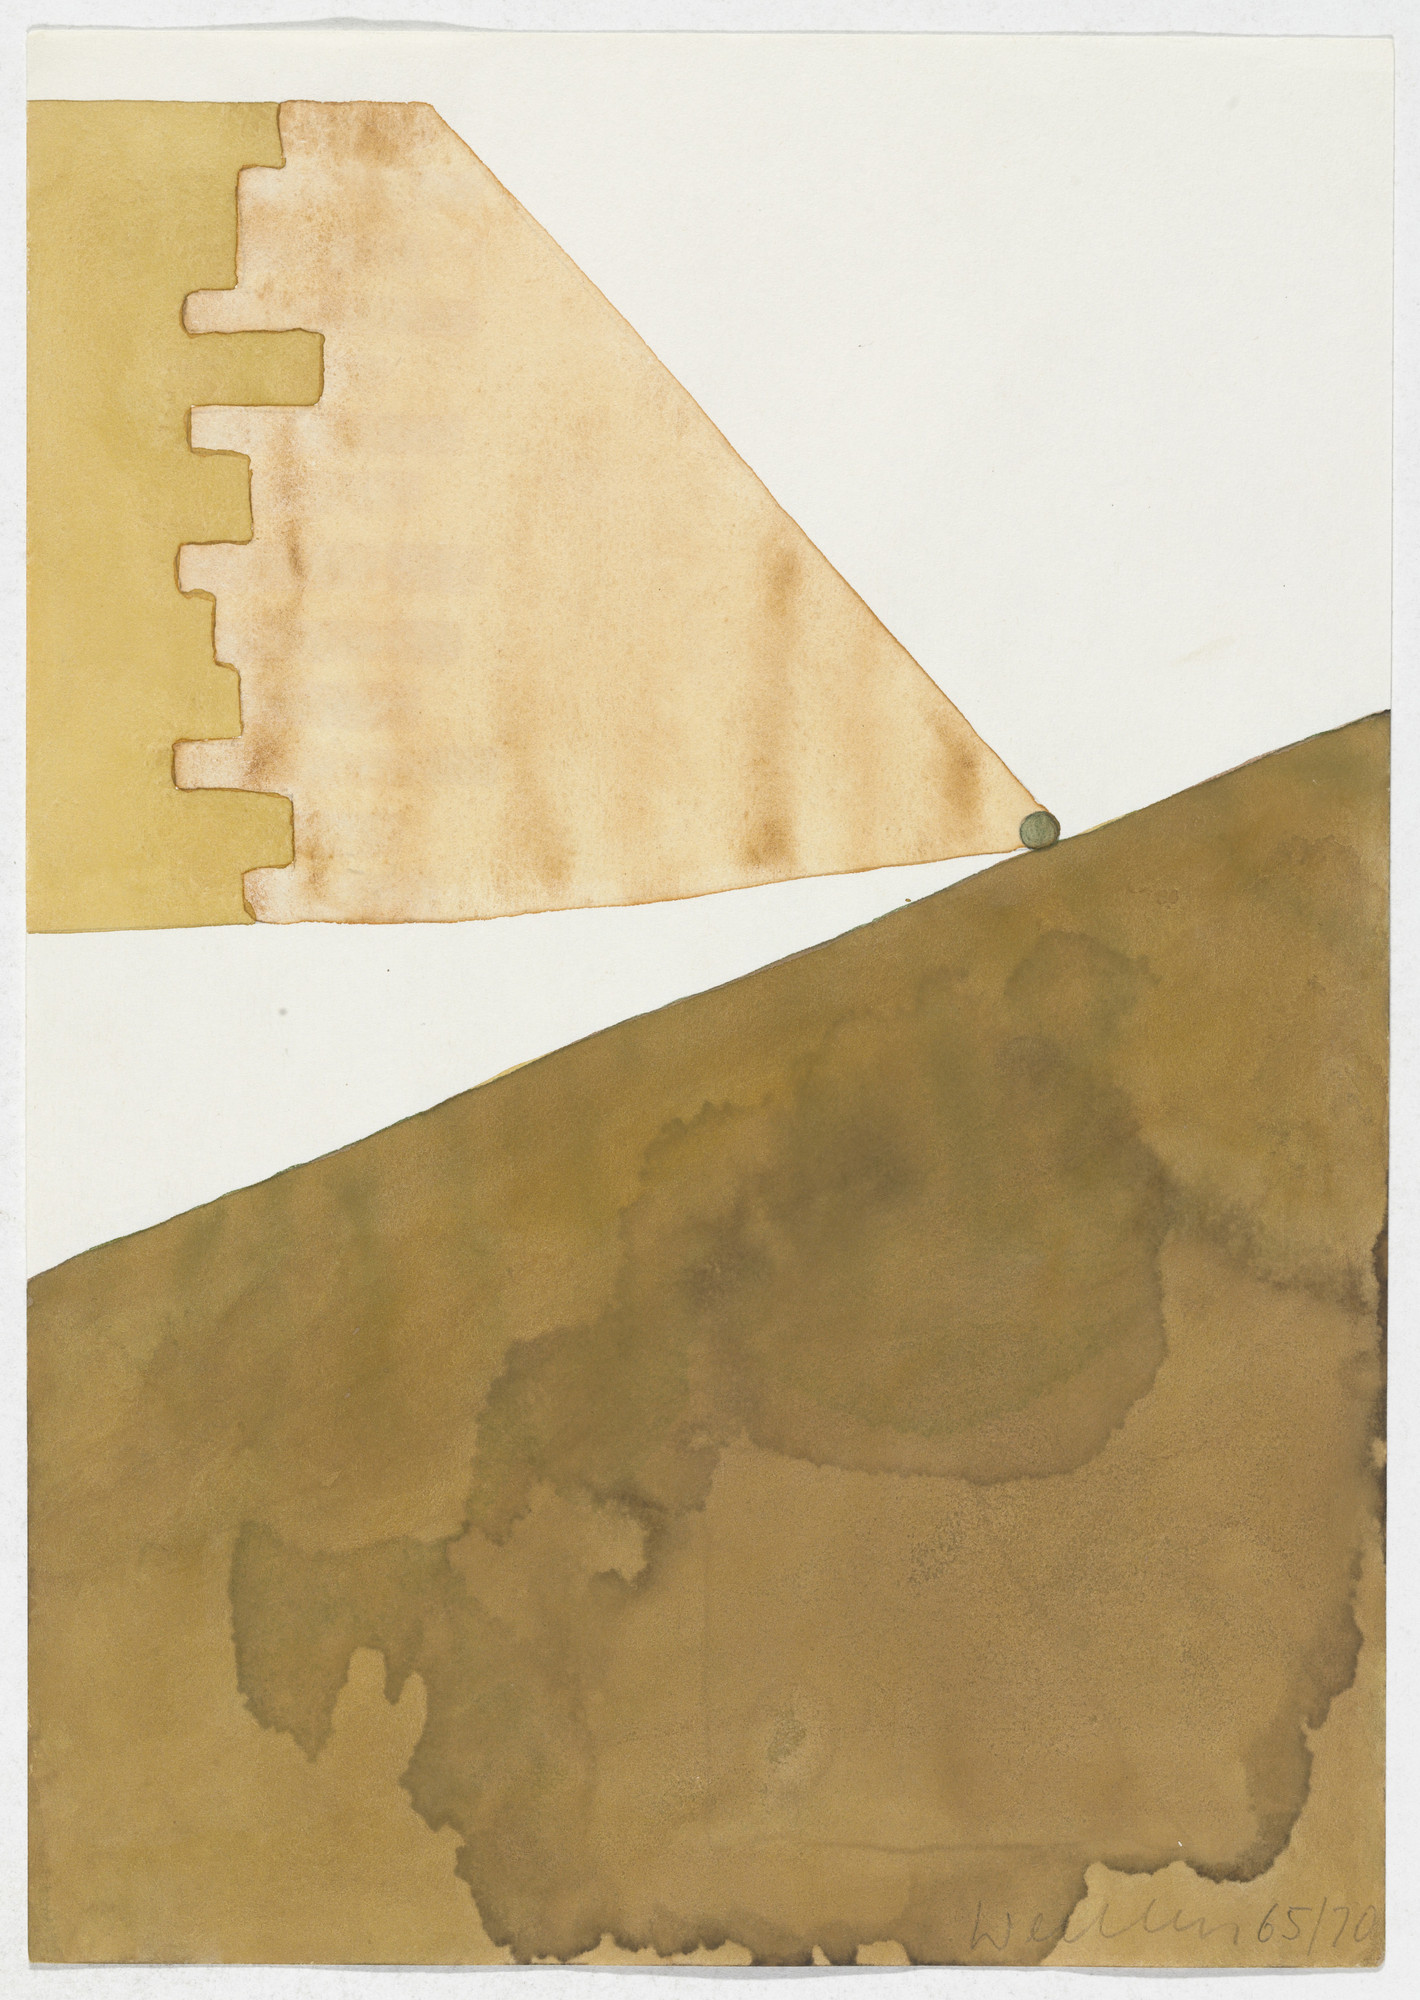 Franz Erhard Walther. Work Drawing: For Hills and Mountains. 1965/1970